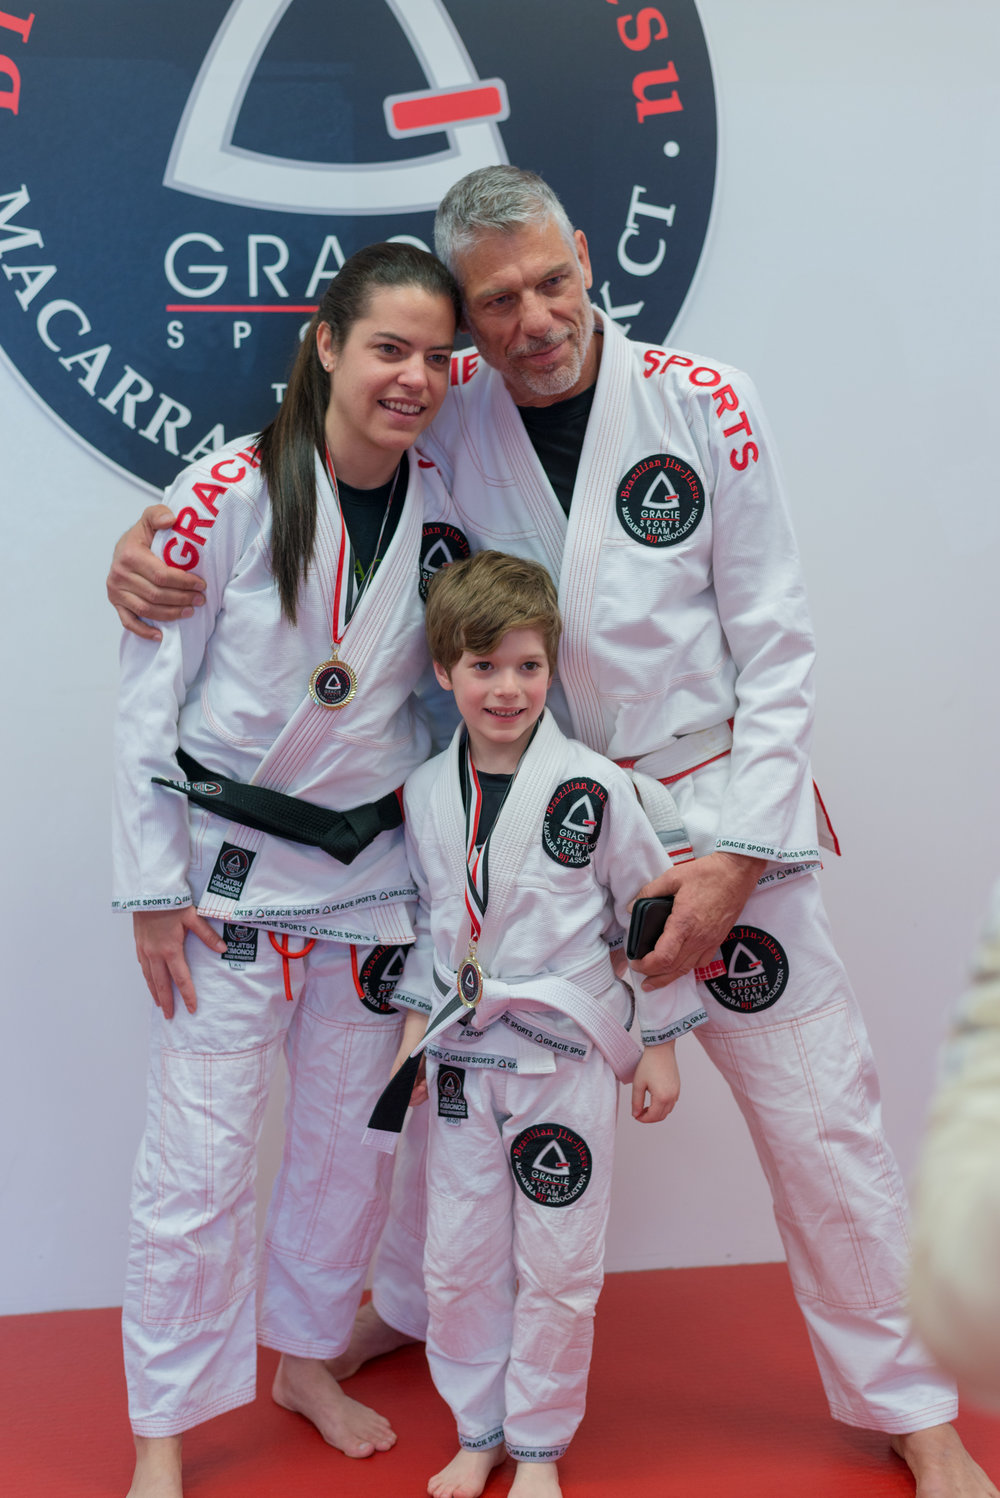 Gracie-Sports-Kids-161.jpg